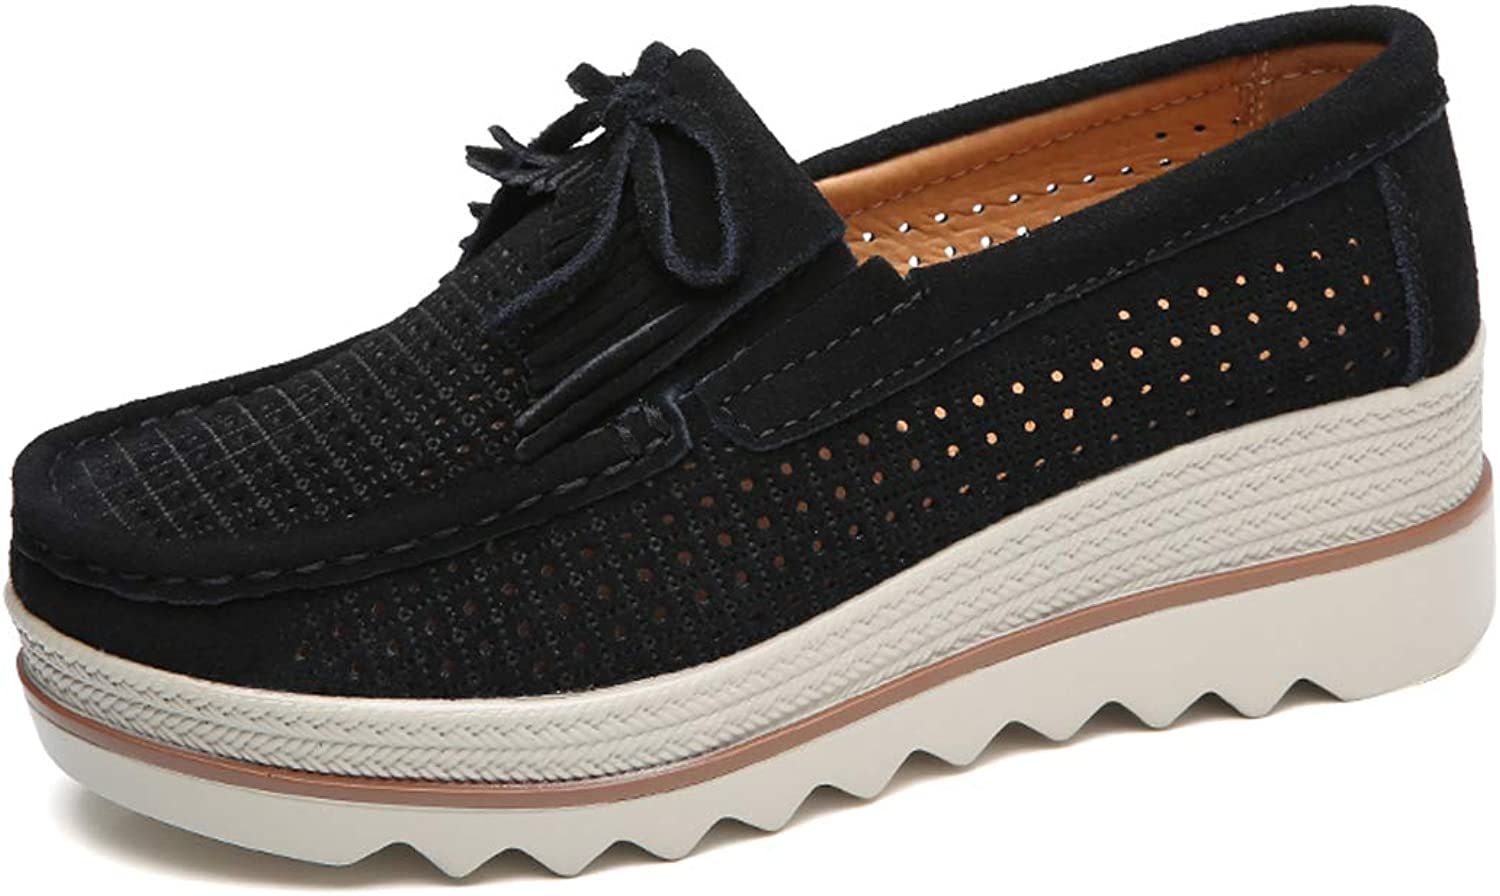 Ruiatoo Women Platform Slip On Loafers Comfort Genuine Suede with Tassel Hollow Out Low Top Moccasins Black 40